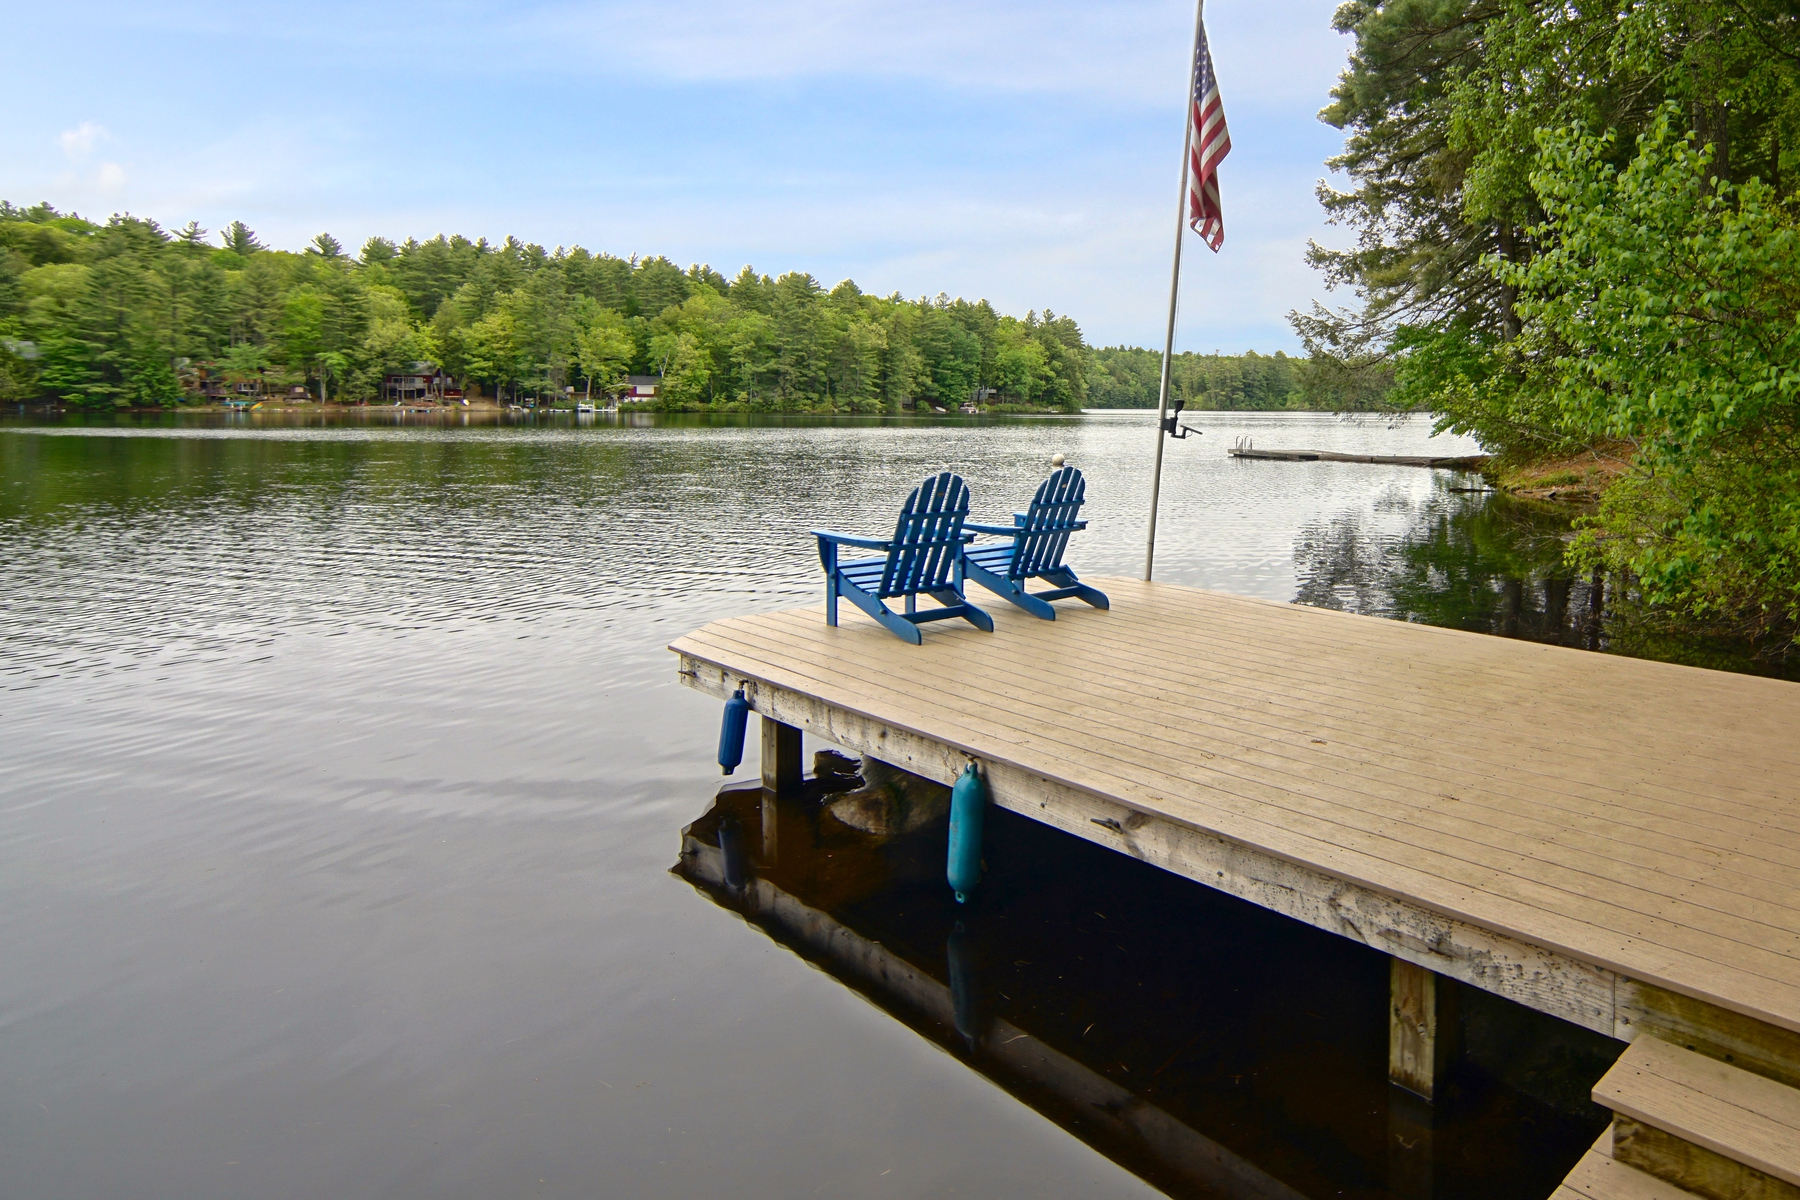 Single Family Home for Sale at The Perfect Place To Get Away From It All! 291 Hemlock Lane Barrington, New Hampshire 03825 United States